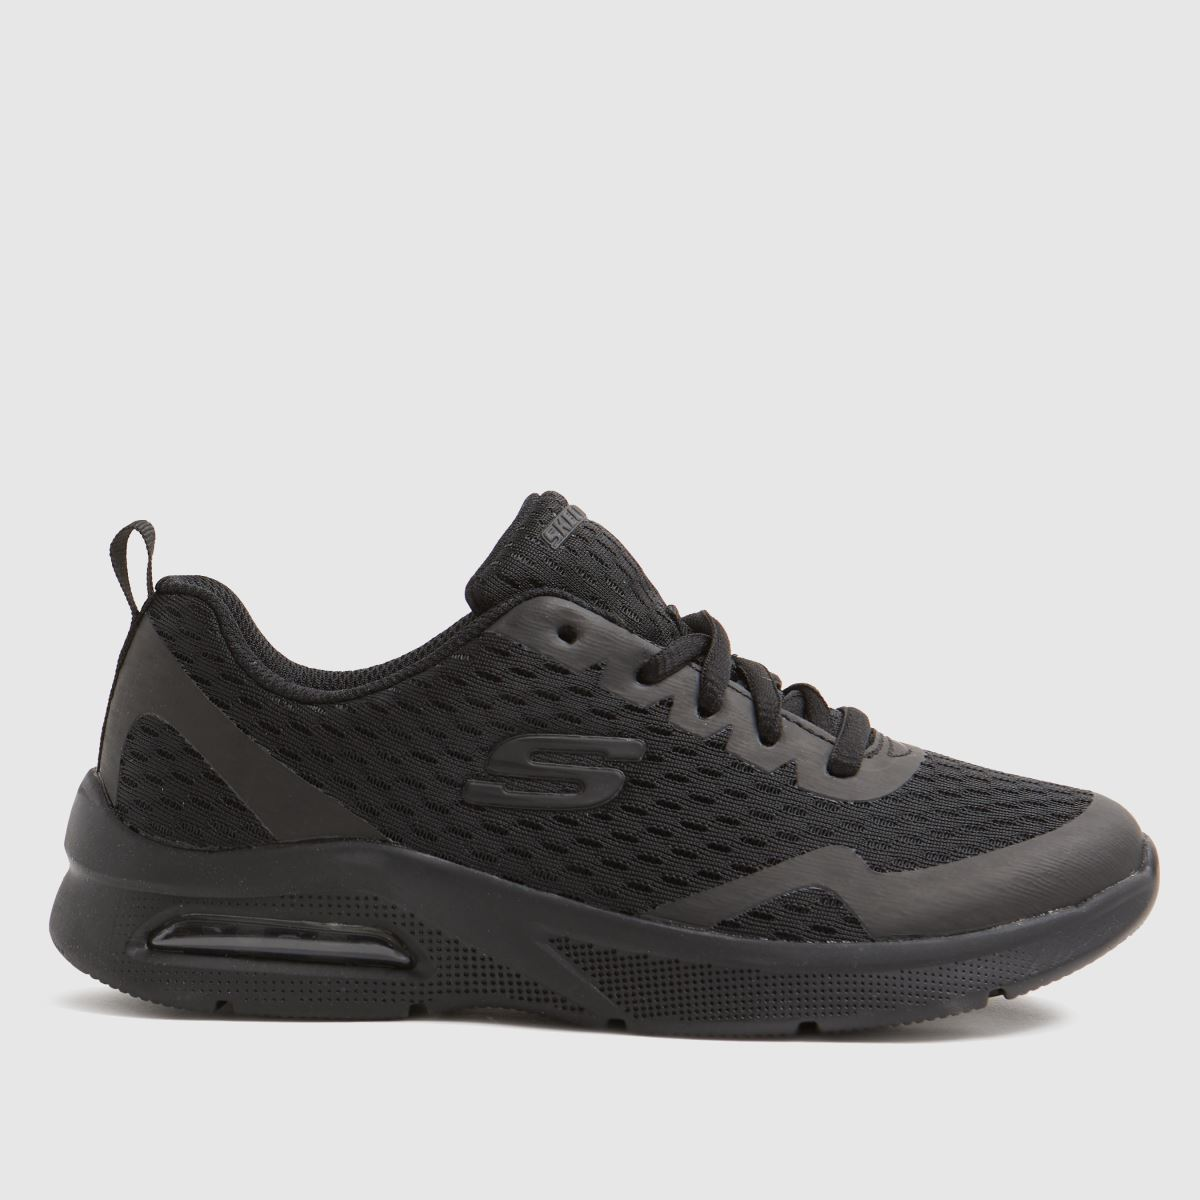 SKECHERS Black Microspec Max Trainers Youth